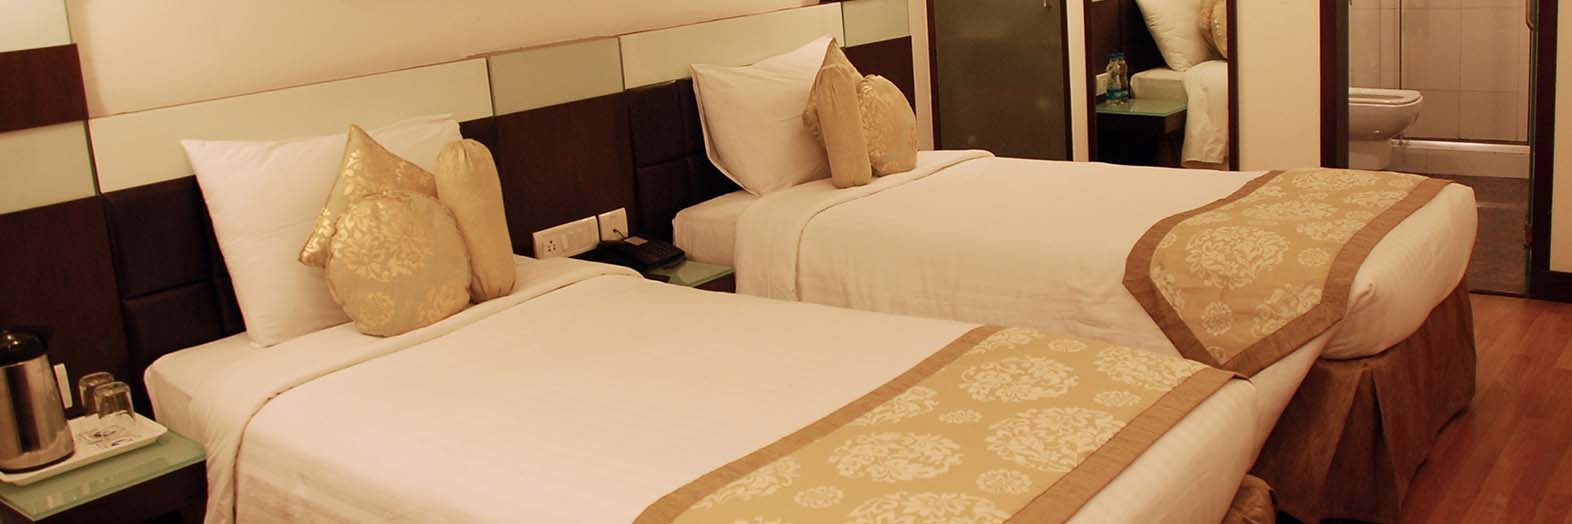 Hotel offers in Jamshedpur